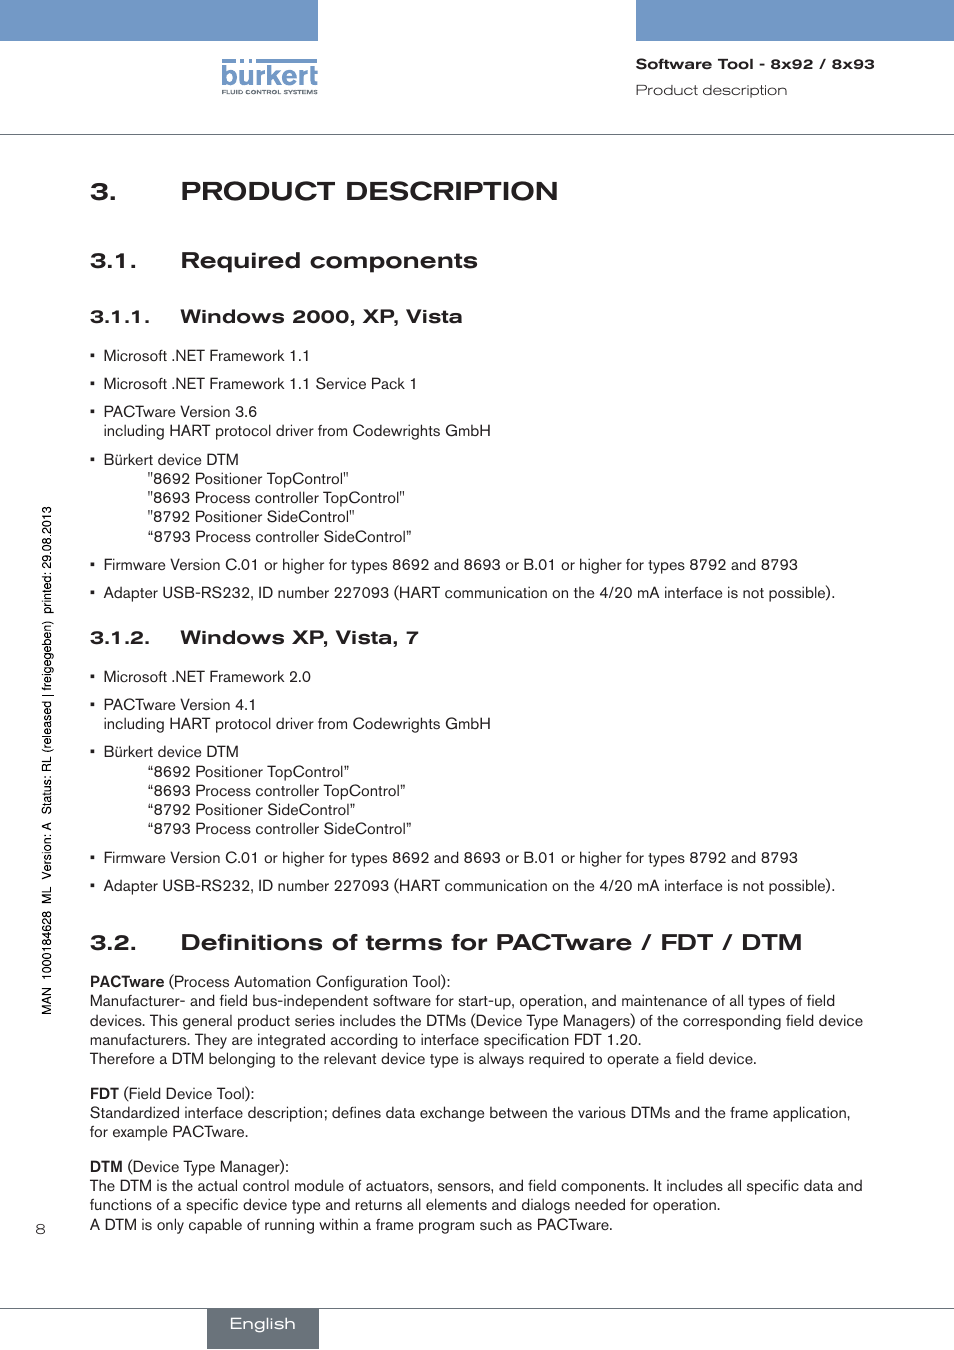 Product description, Required components, Windows 2000, xp